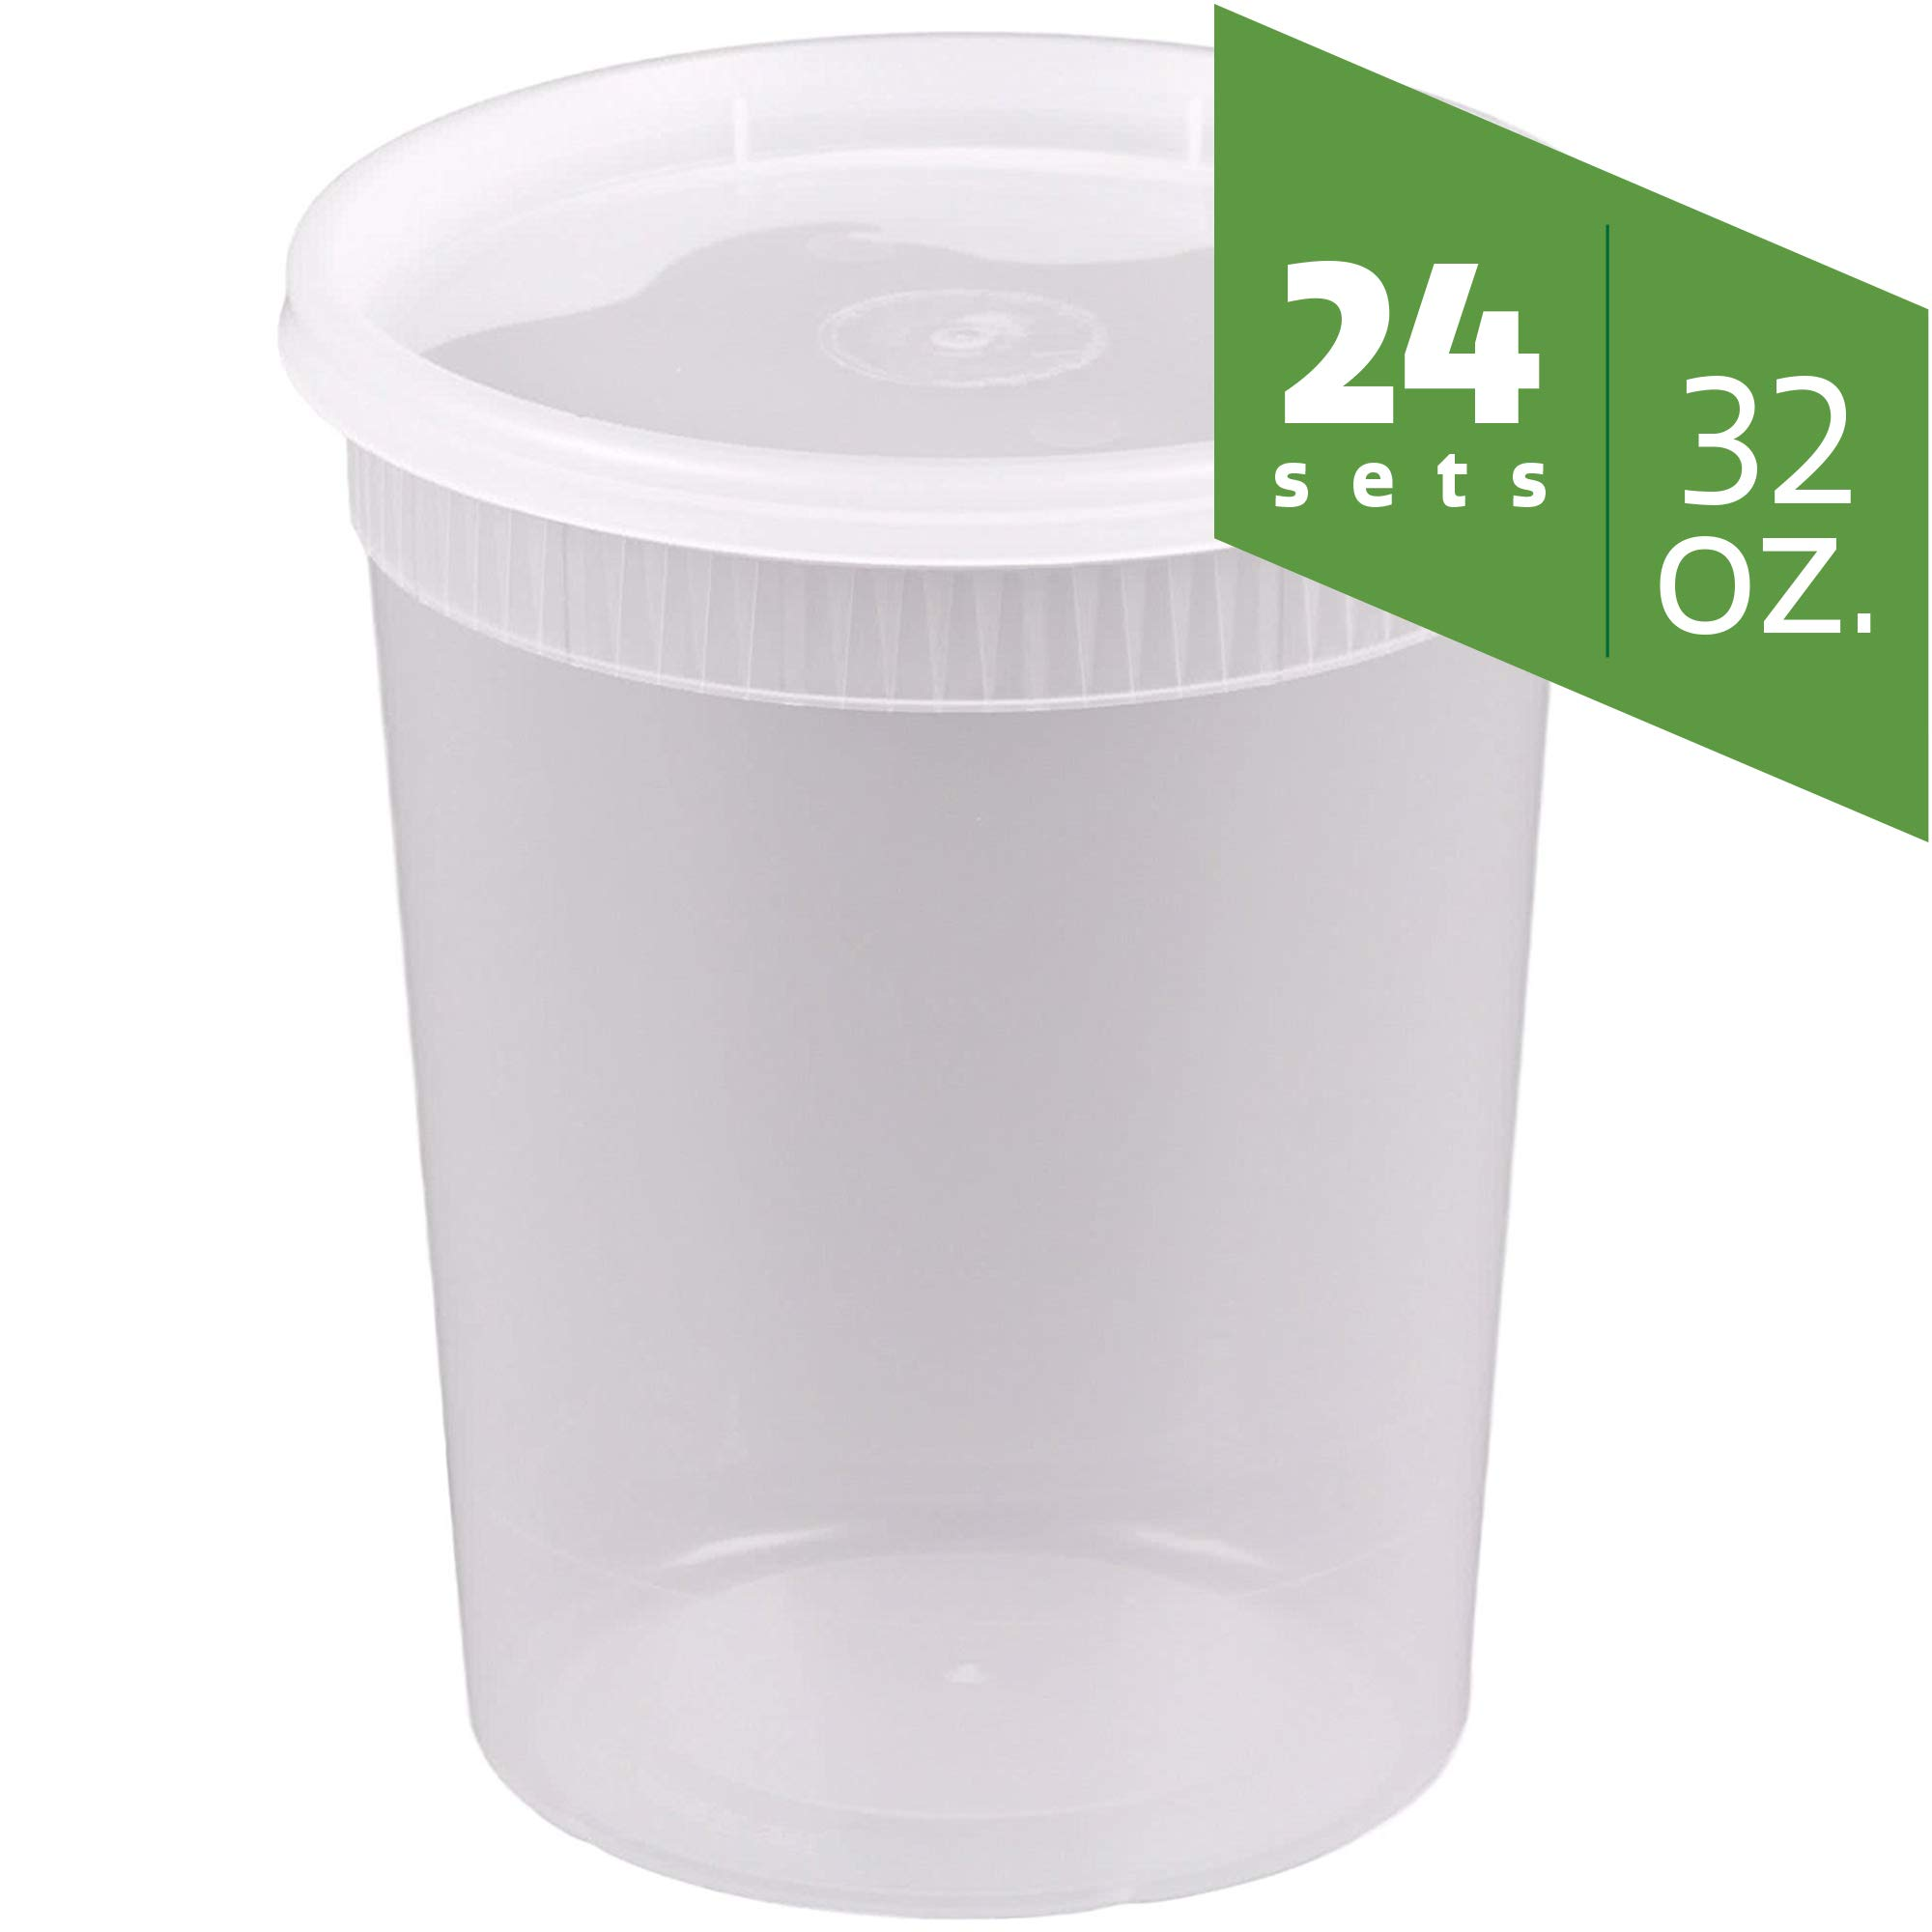 Plastic Deli Food Storage Containers with Airtight Lids (32 oz. - 24 Sets)